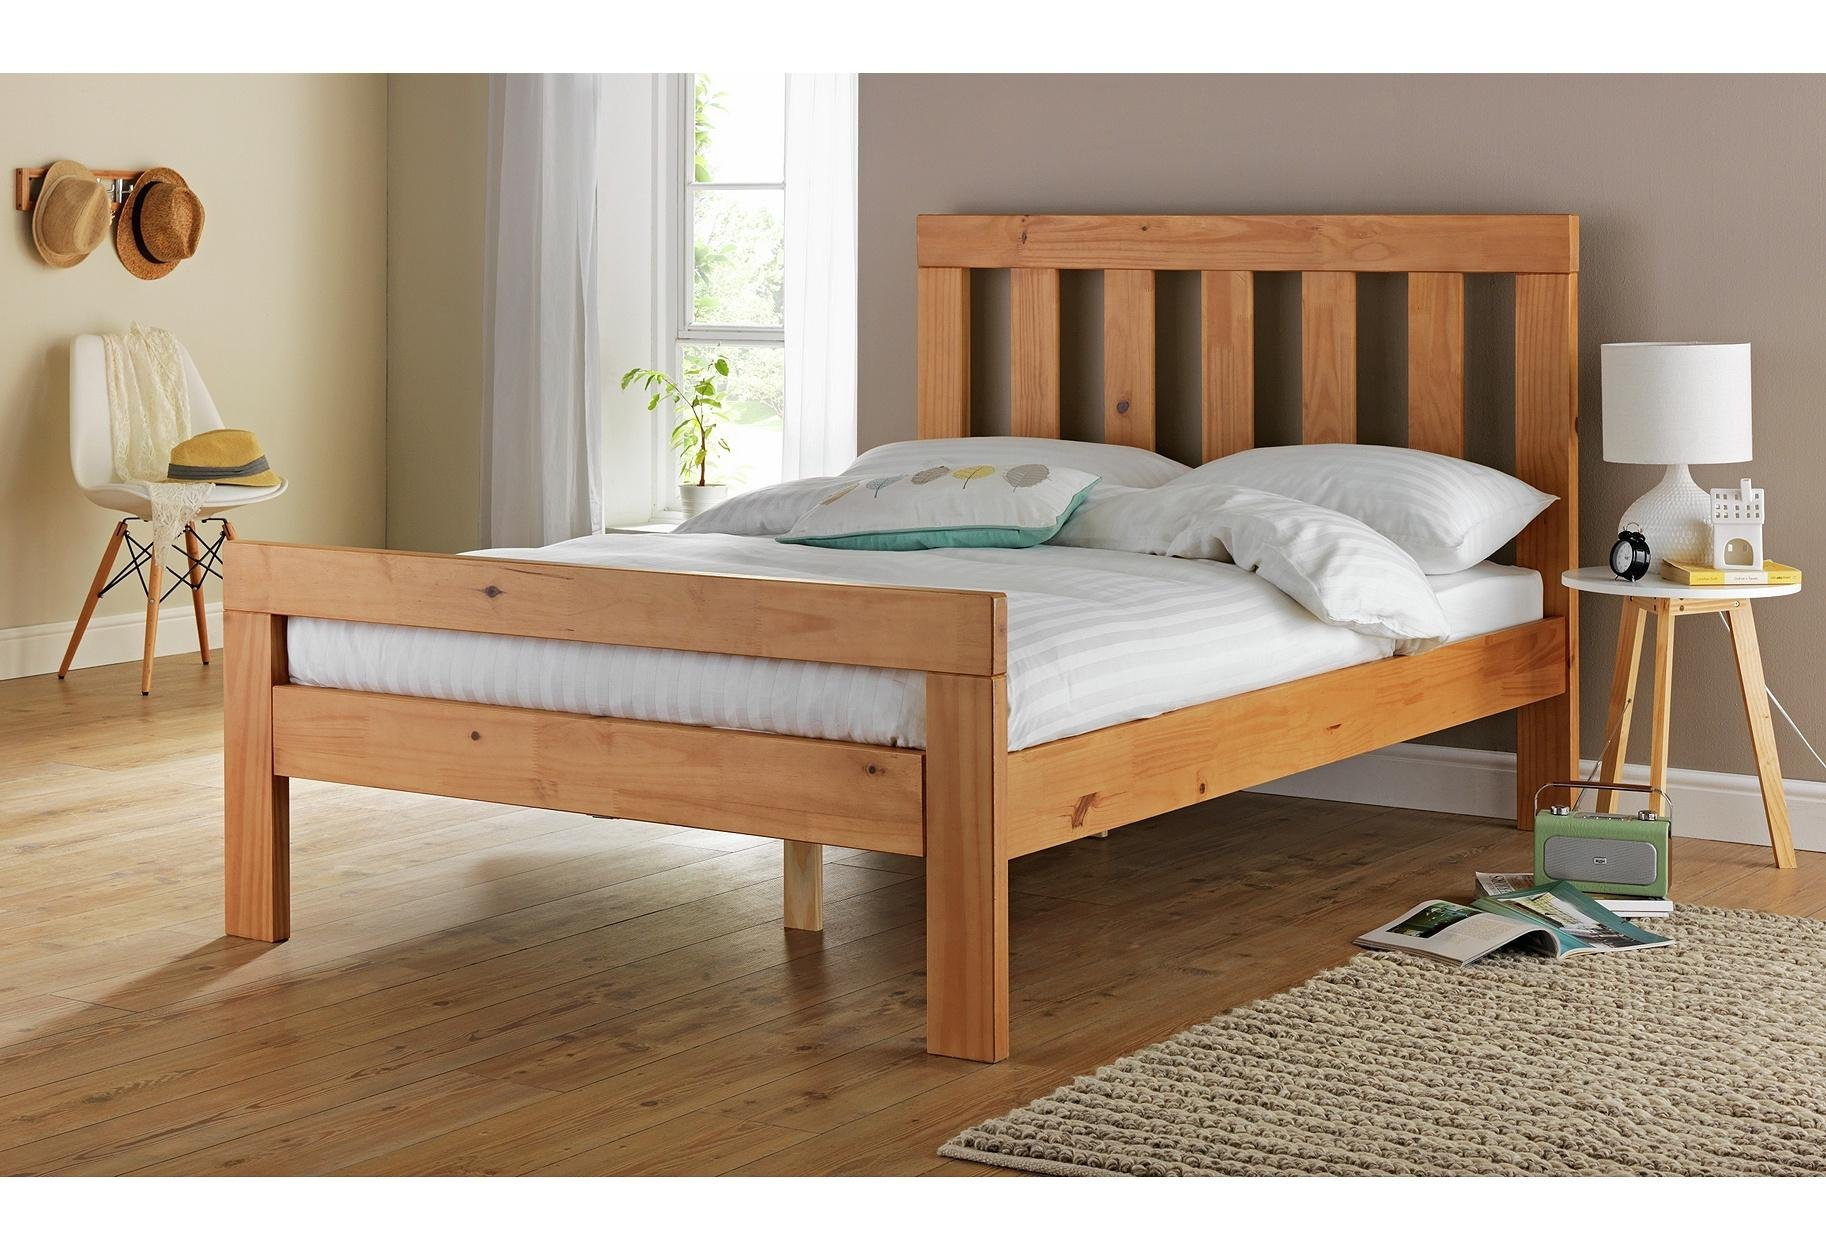 Buy Collection Chile Small Double Bed Frame Oak Stain at Argos